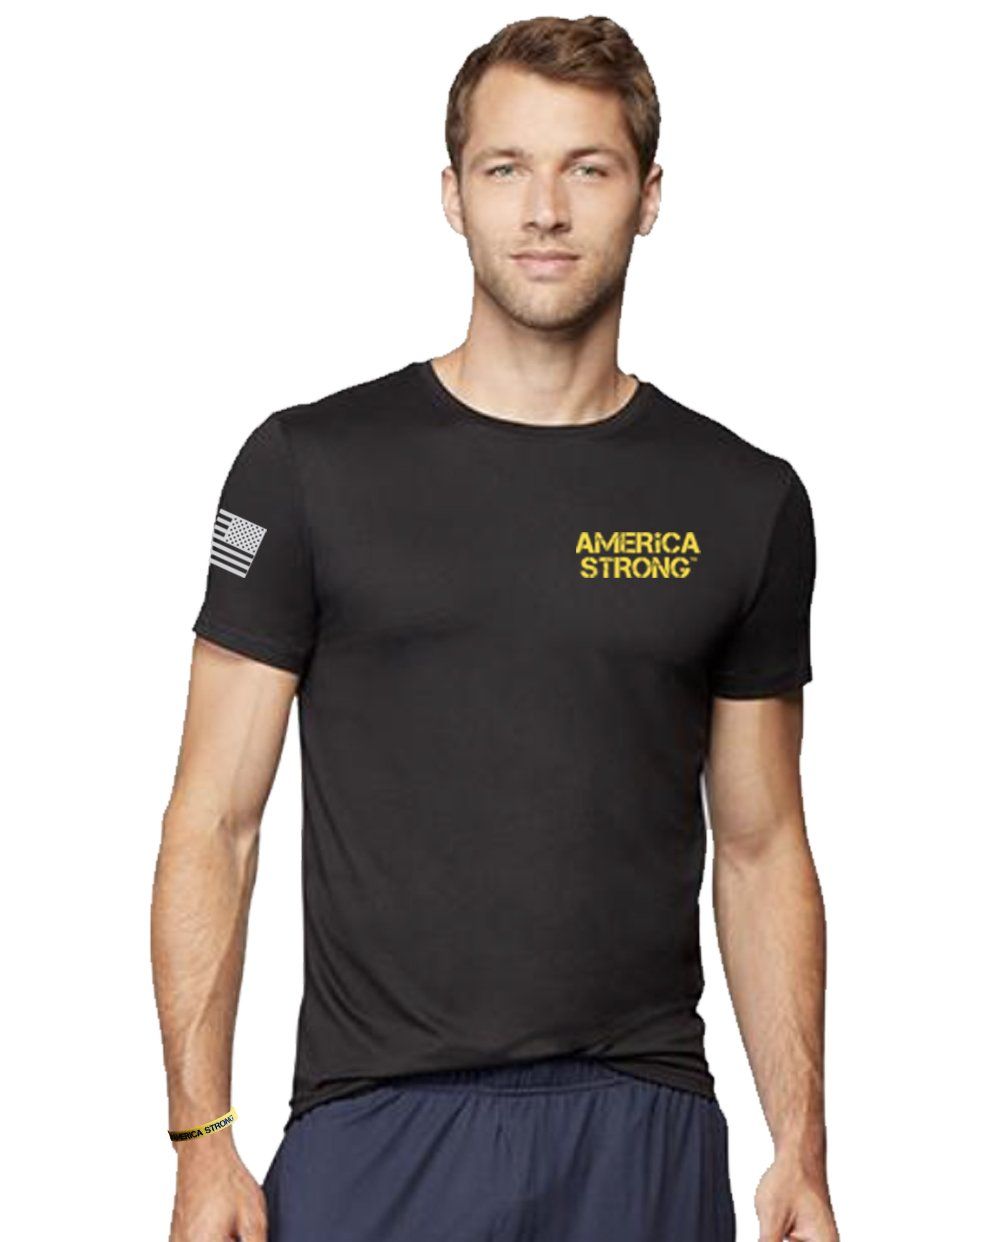 Men's Performance Short Sleeve T-Shirt, Mount Rushmore, Style #46001 - United First Responders Brands